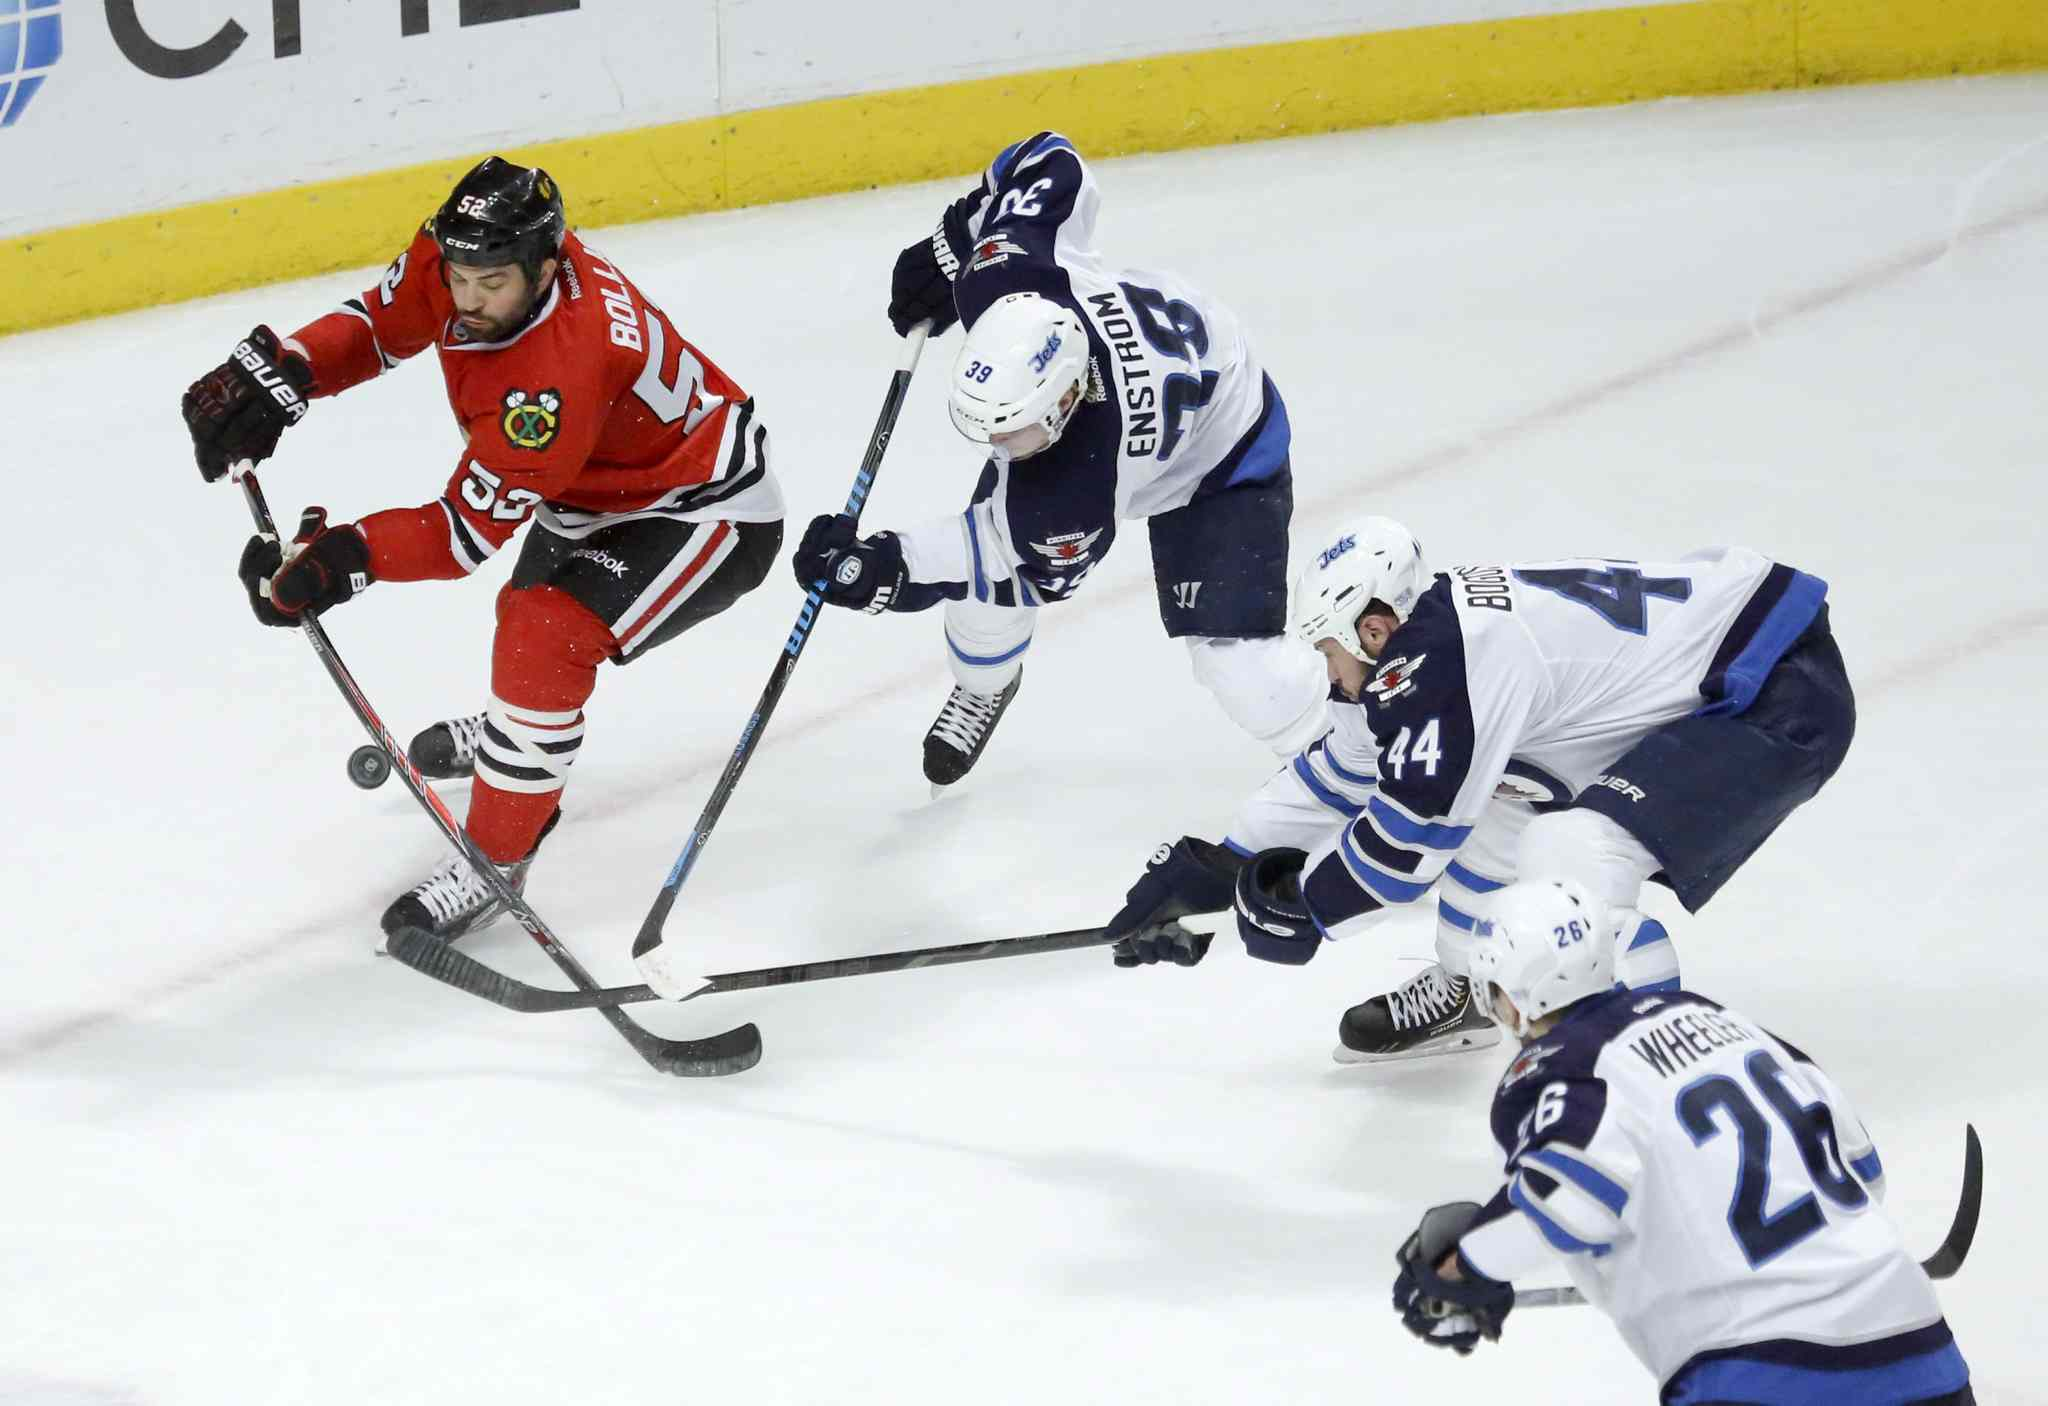 Blackhawks left wing Brandon Bollig can't get a shot-on-goal as Jets  Tobias Enstrom Zach Bogosian and Blake Wheeler close in.